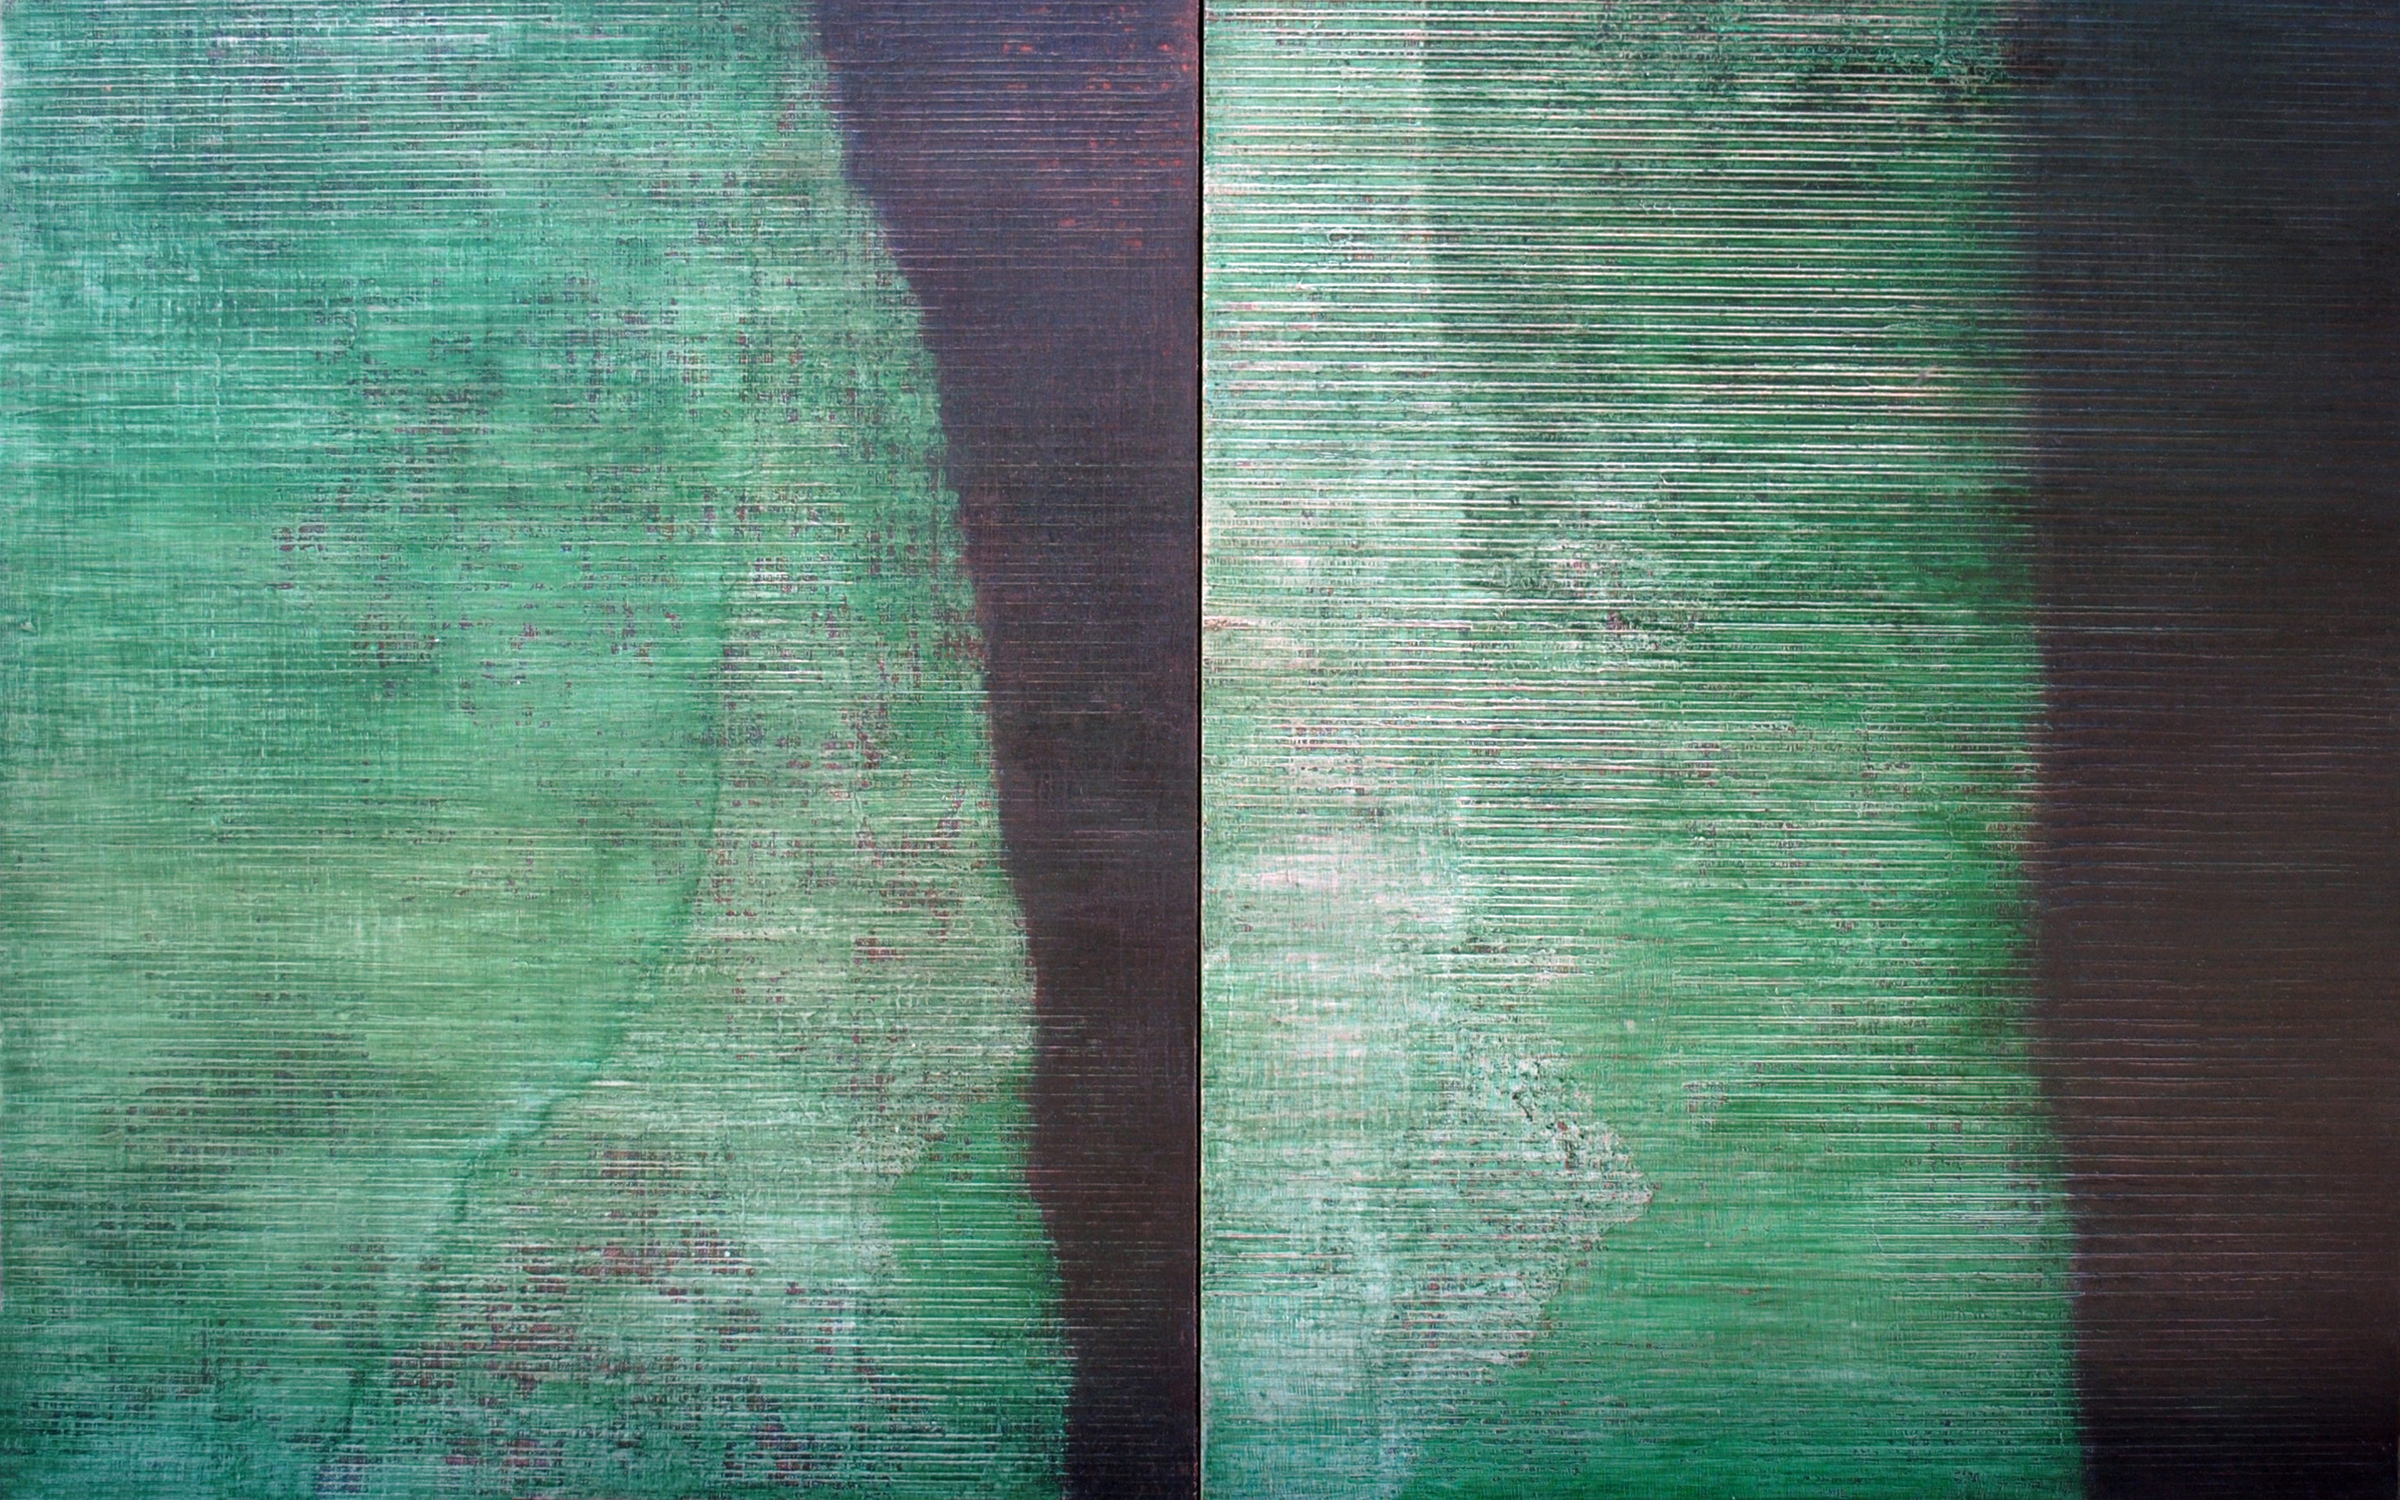 Linea Terminale: 3.12, 2012, Oil on linen over panels, 20 x 36 inches.